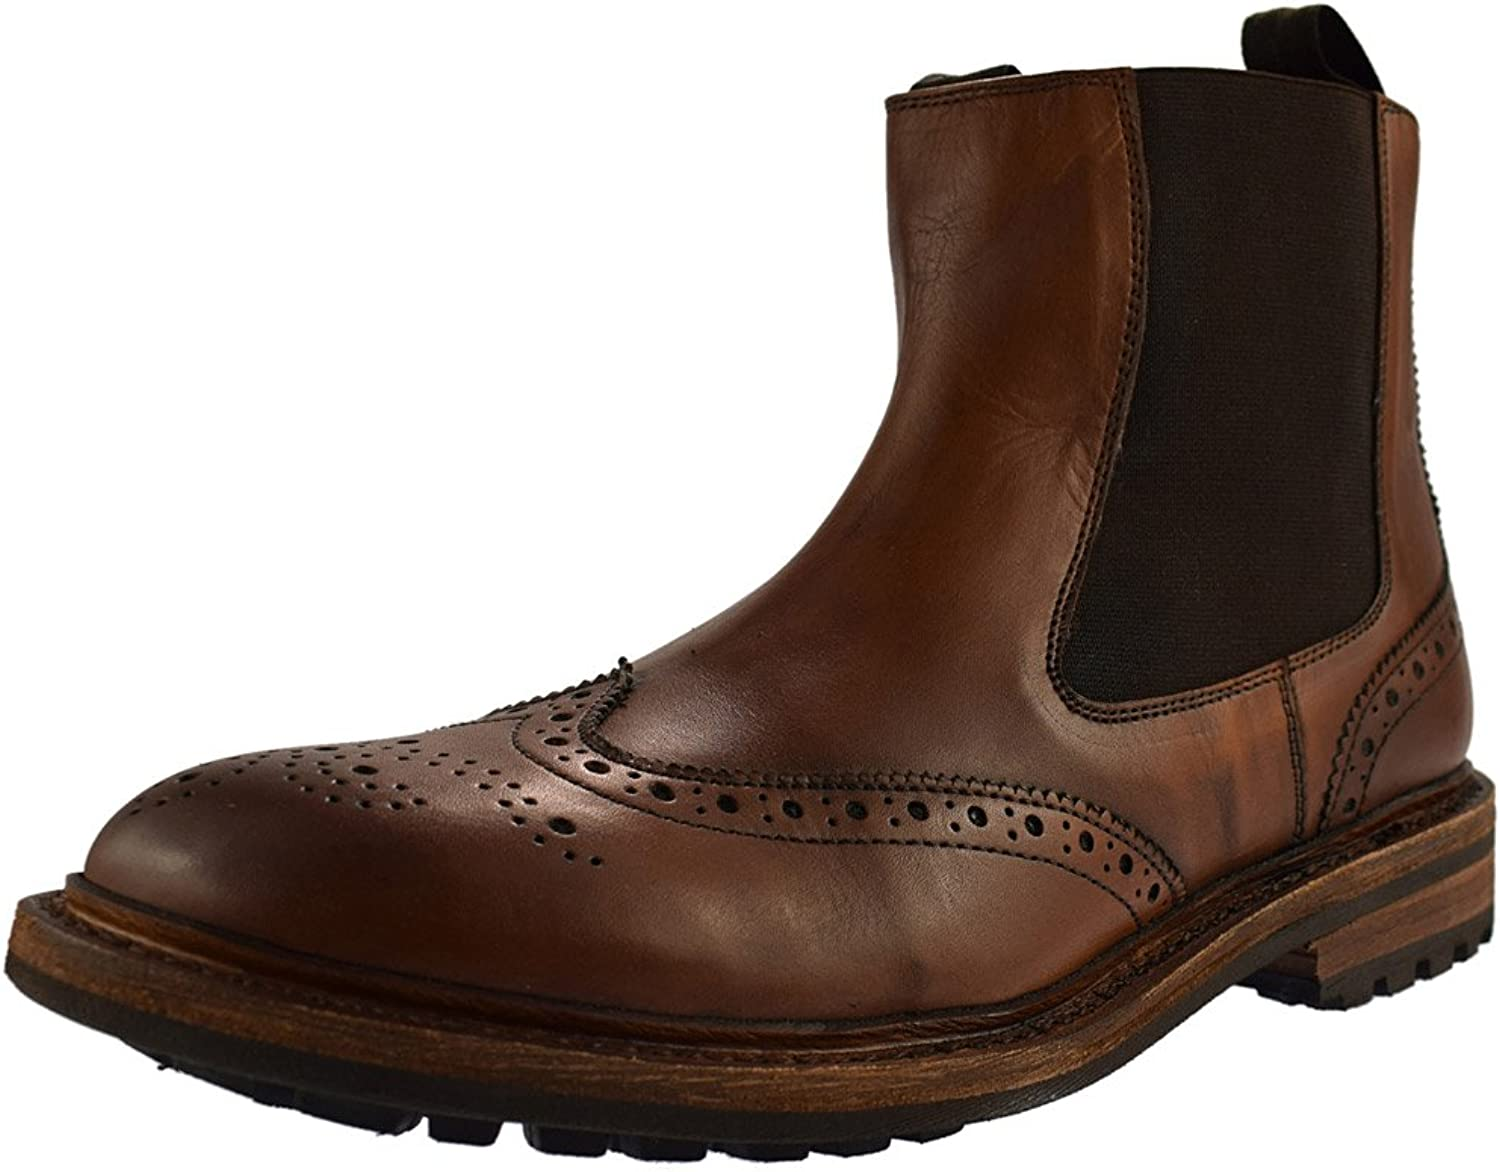 Woodland ISAIAH Mens Leather Twin Gusset Chelsea Boots Light Brown